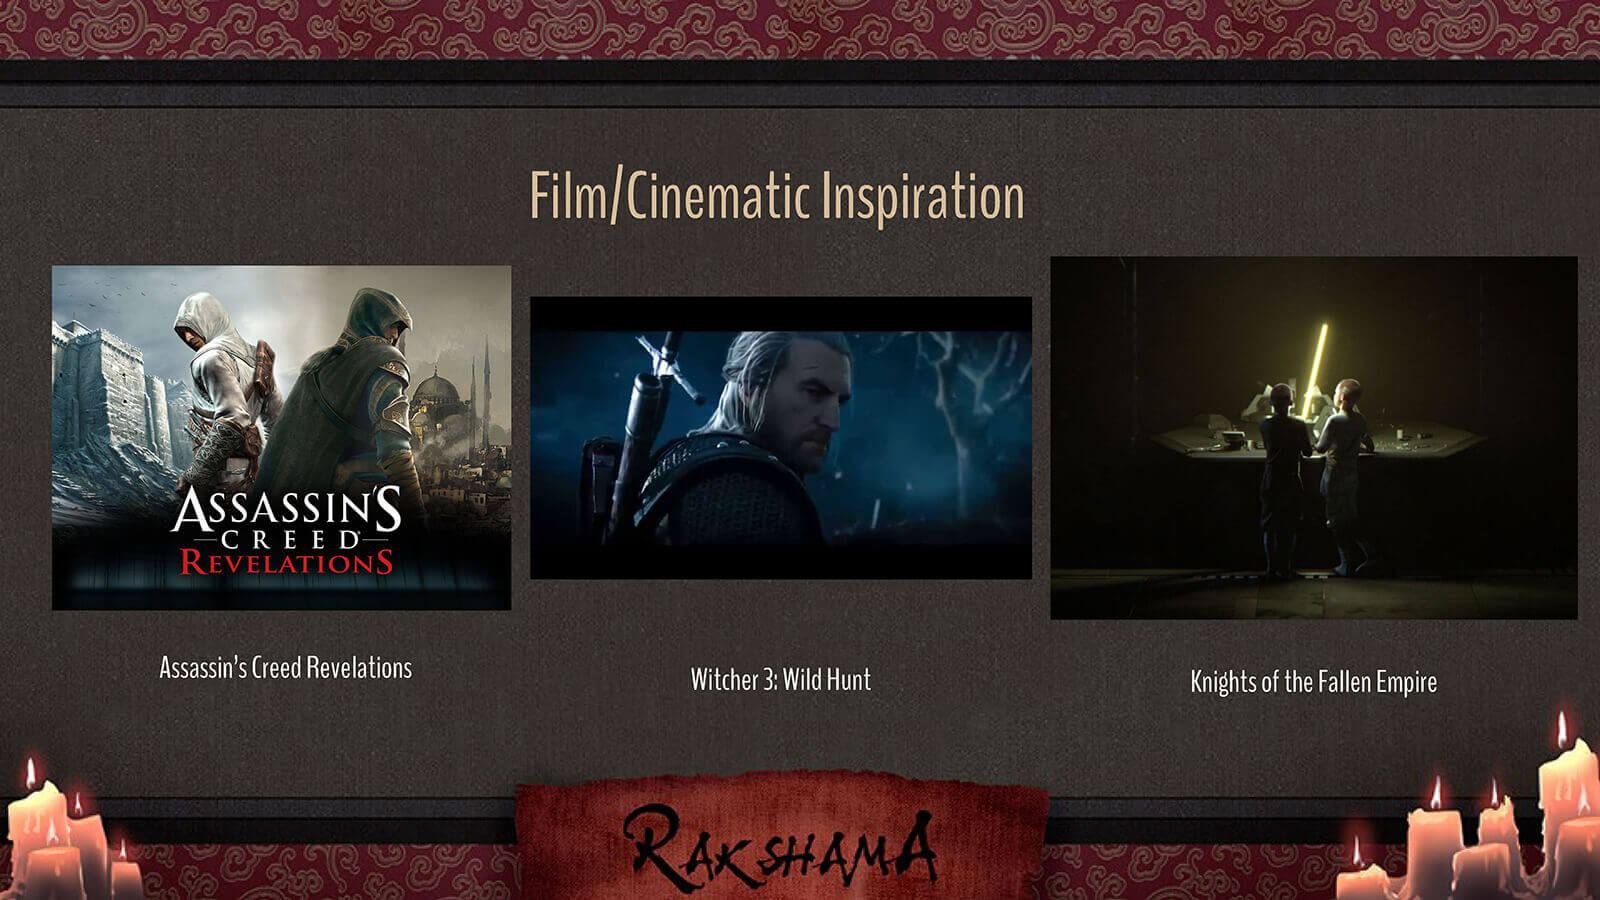 Film/Cinematic Inspiration slide for the film Rakshama, including images of Assassin's Creed and Witcher 3